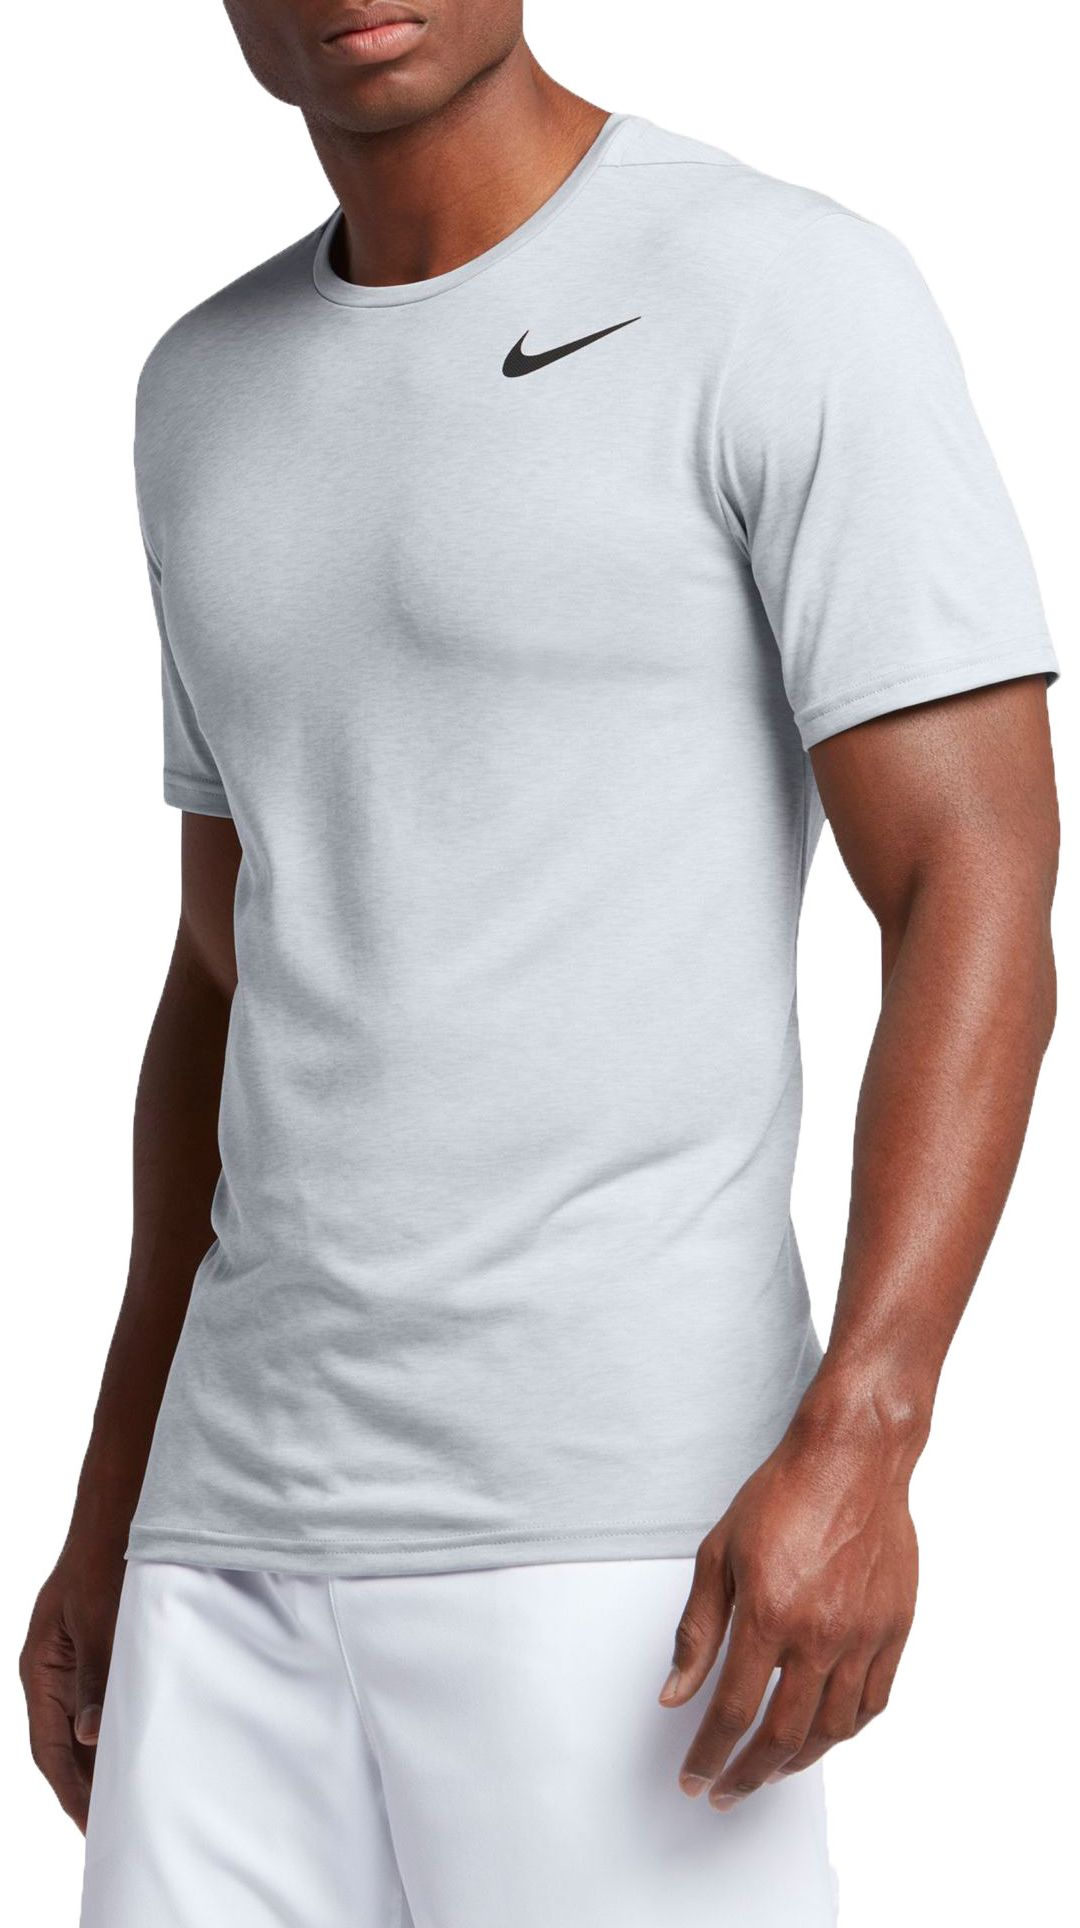 01ae1c0d6b3a4 Nike Men's Hyper Dry Breathe T-Shirt. noImageFound. Previous